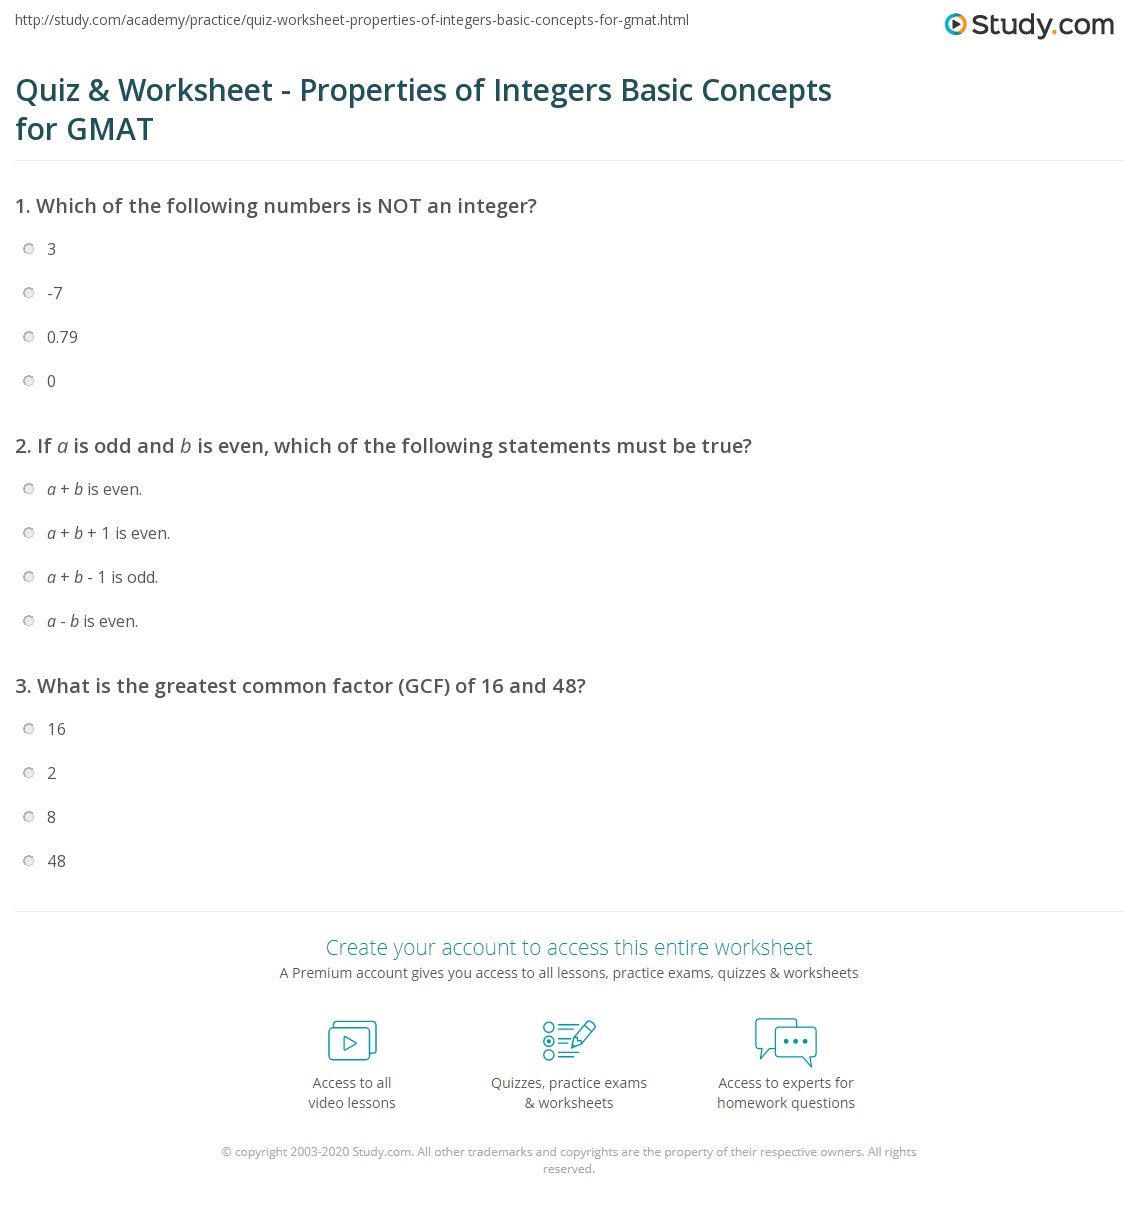 Quiz & Worksheet Properties of Integers Basic Concepts for GMAT